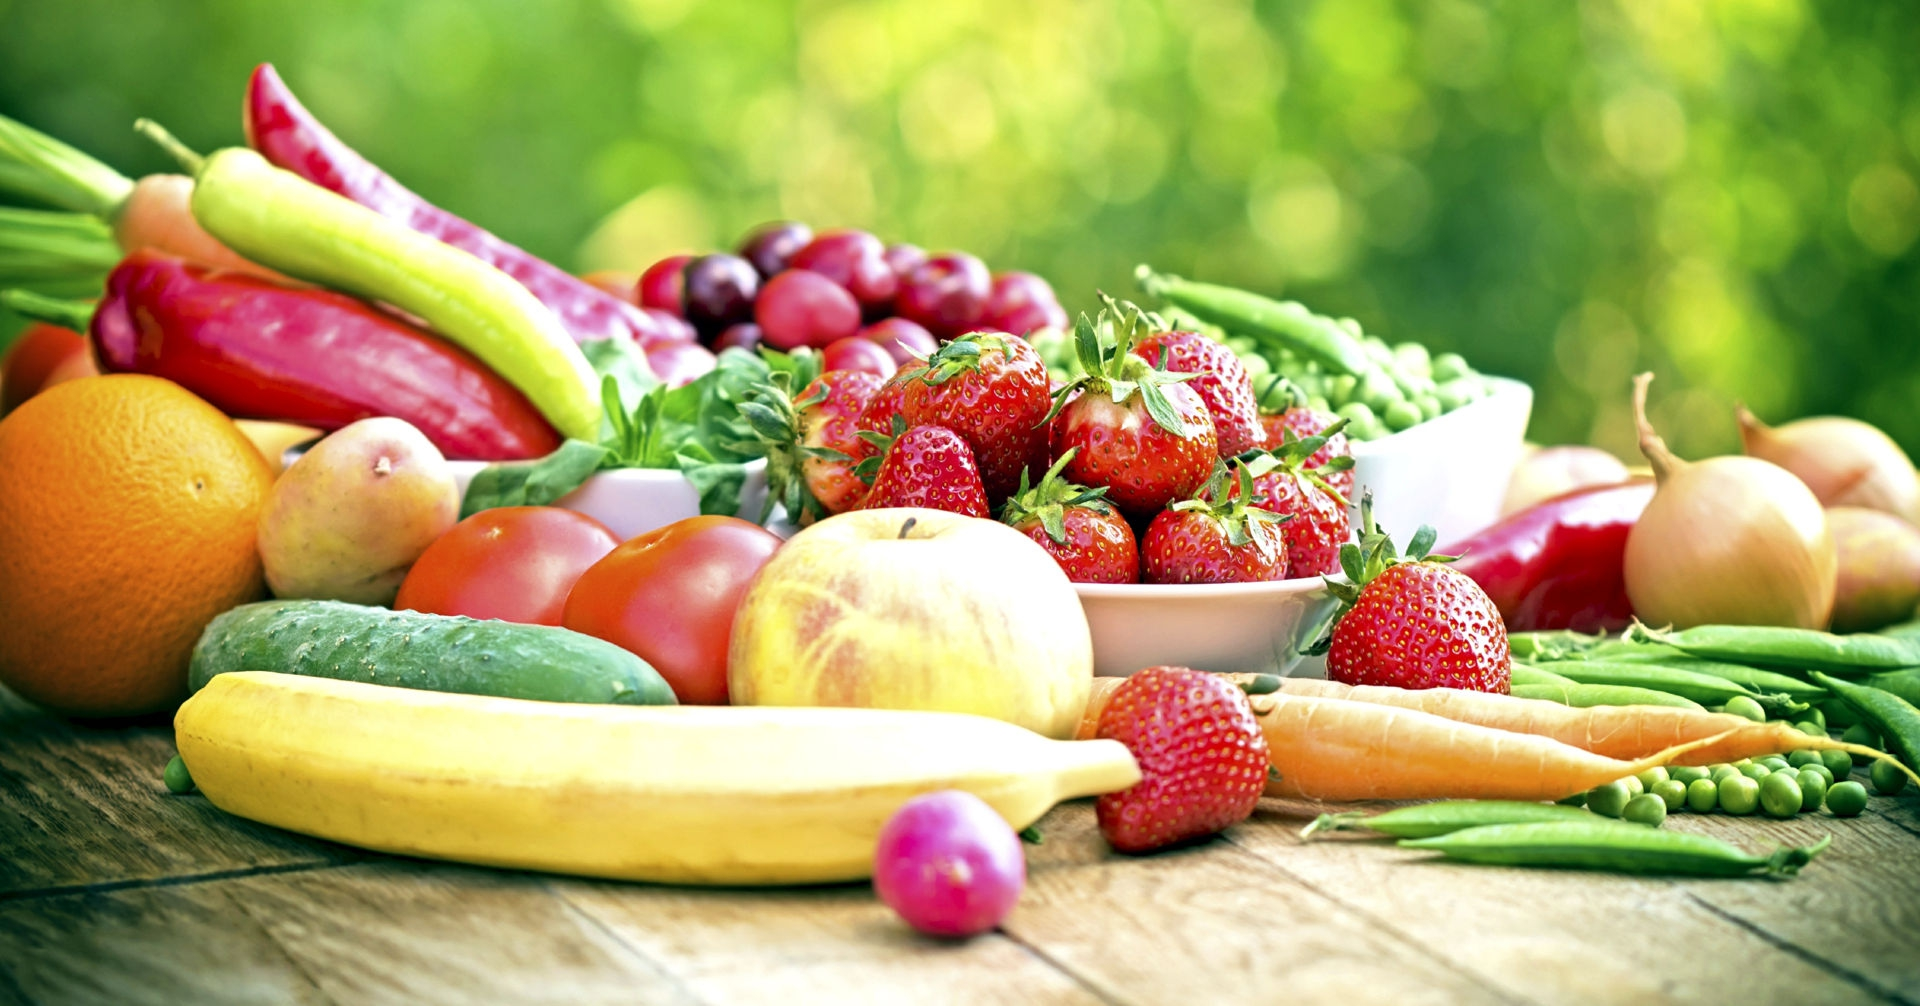 FRUIT AND VEGETABLE WHOLESALE